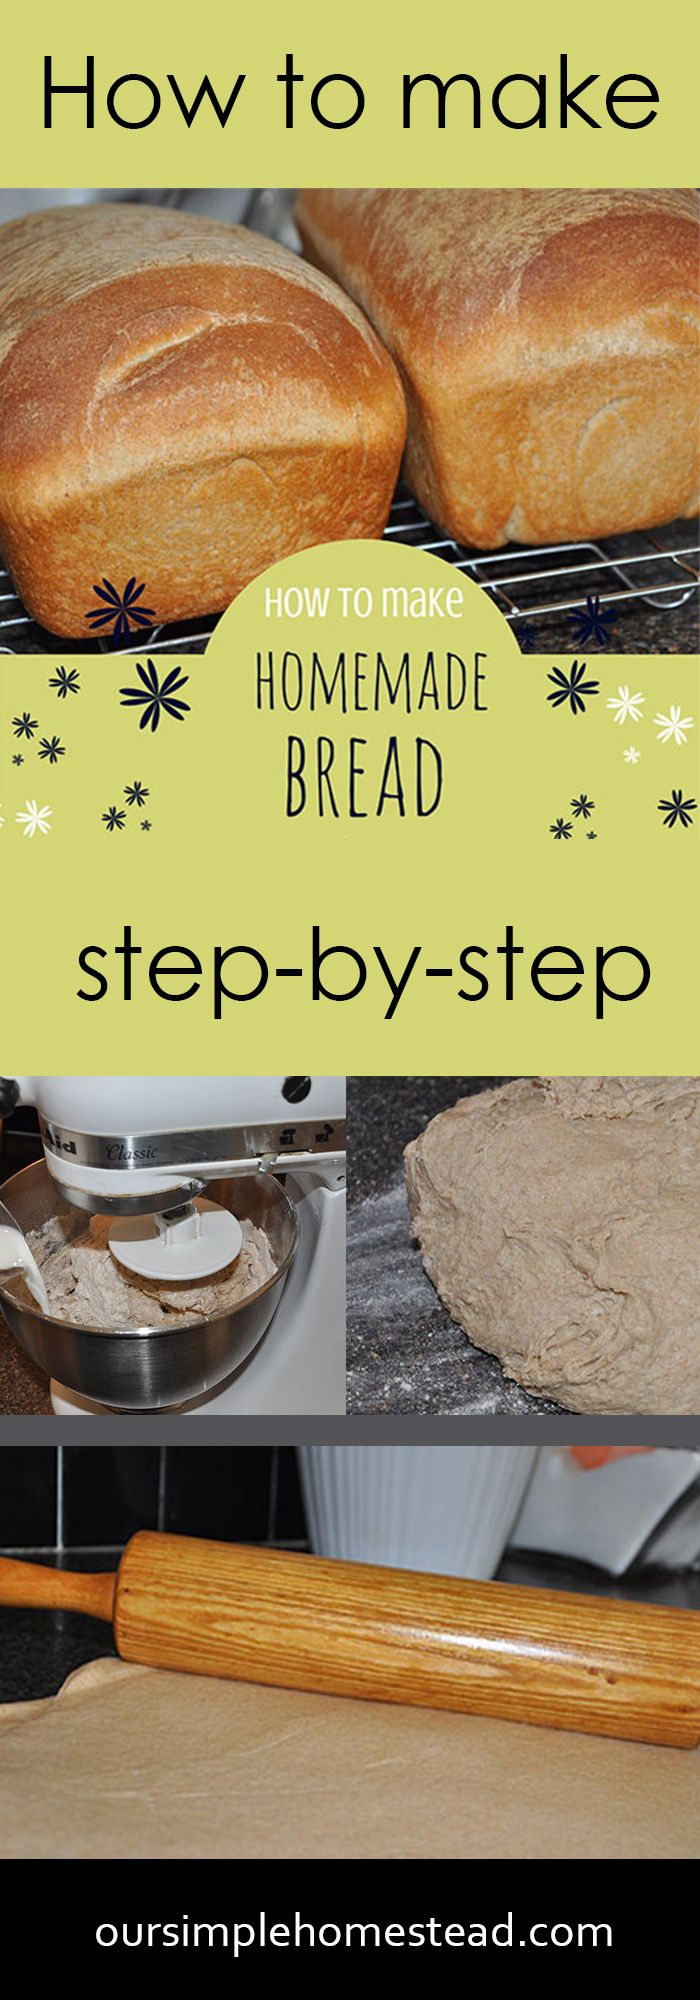 How to Make Homemade Bread - There is nothing like the smell of yeast rising or the fresh baked smell of a loaf of homemade bread cooling in the kitchen.